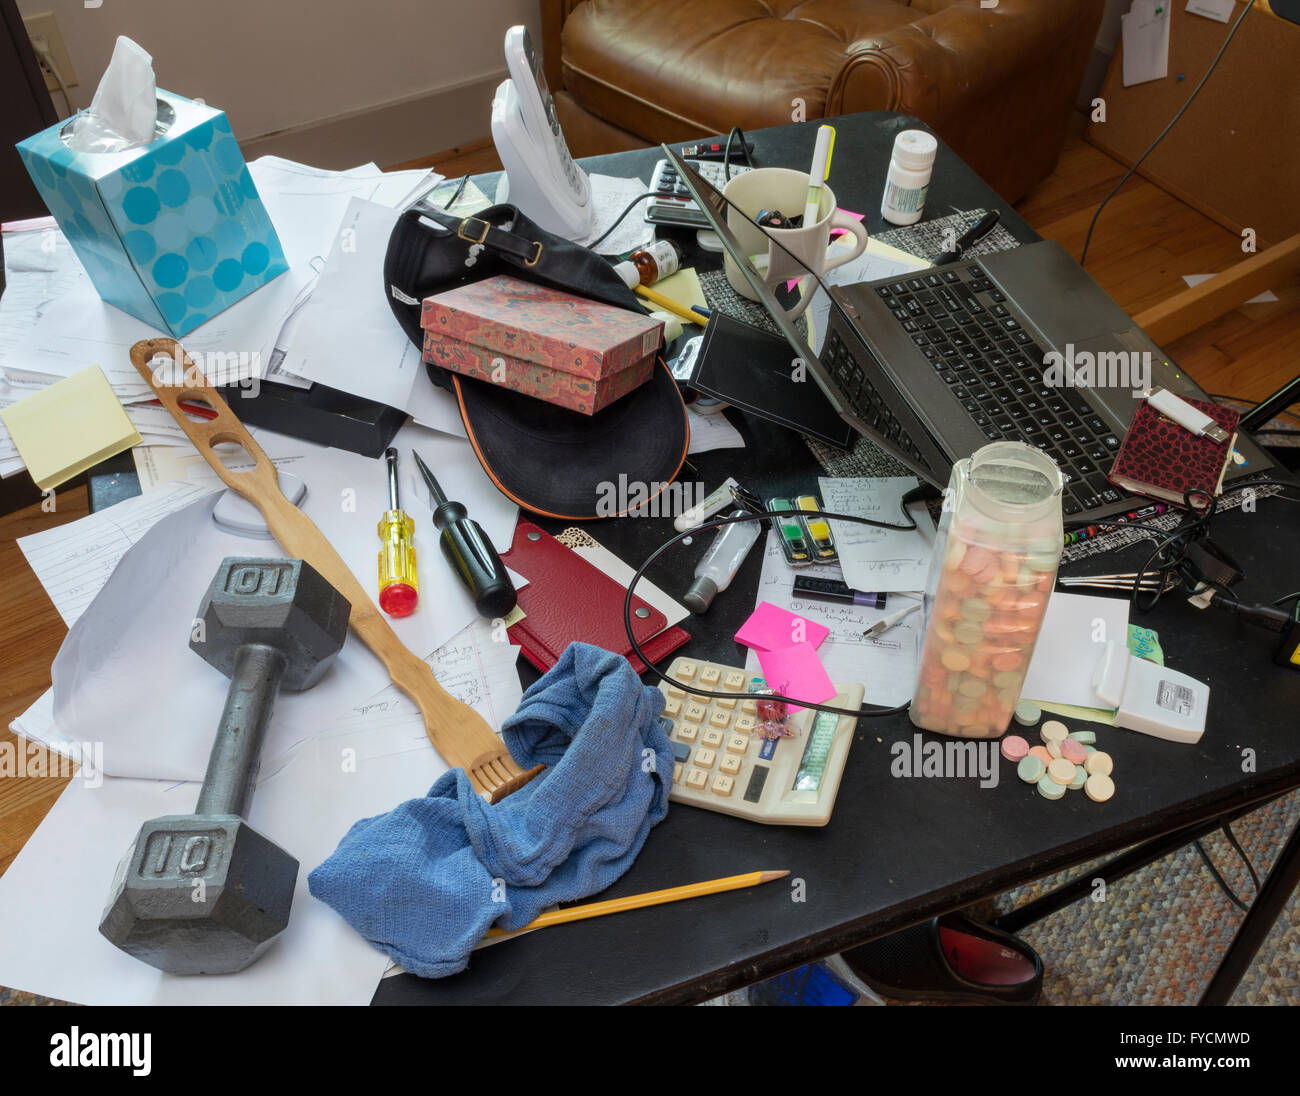 Chaotic, messy desk - Stock Image